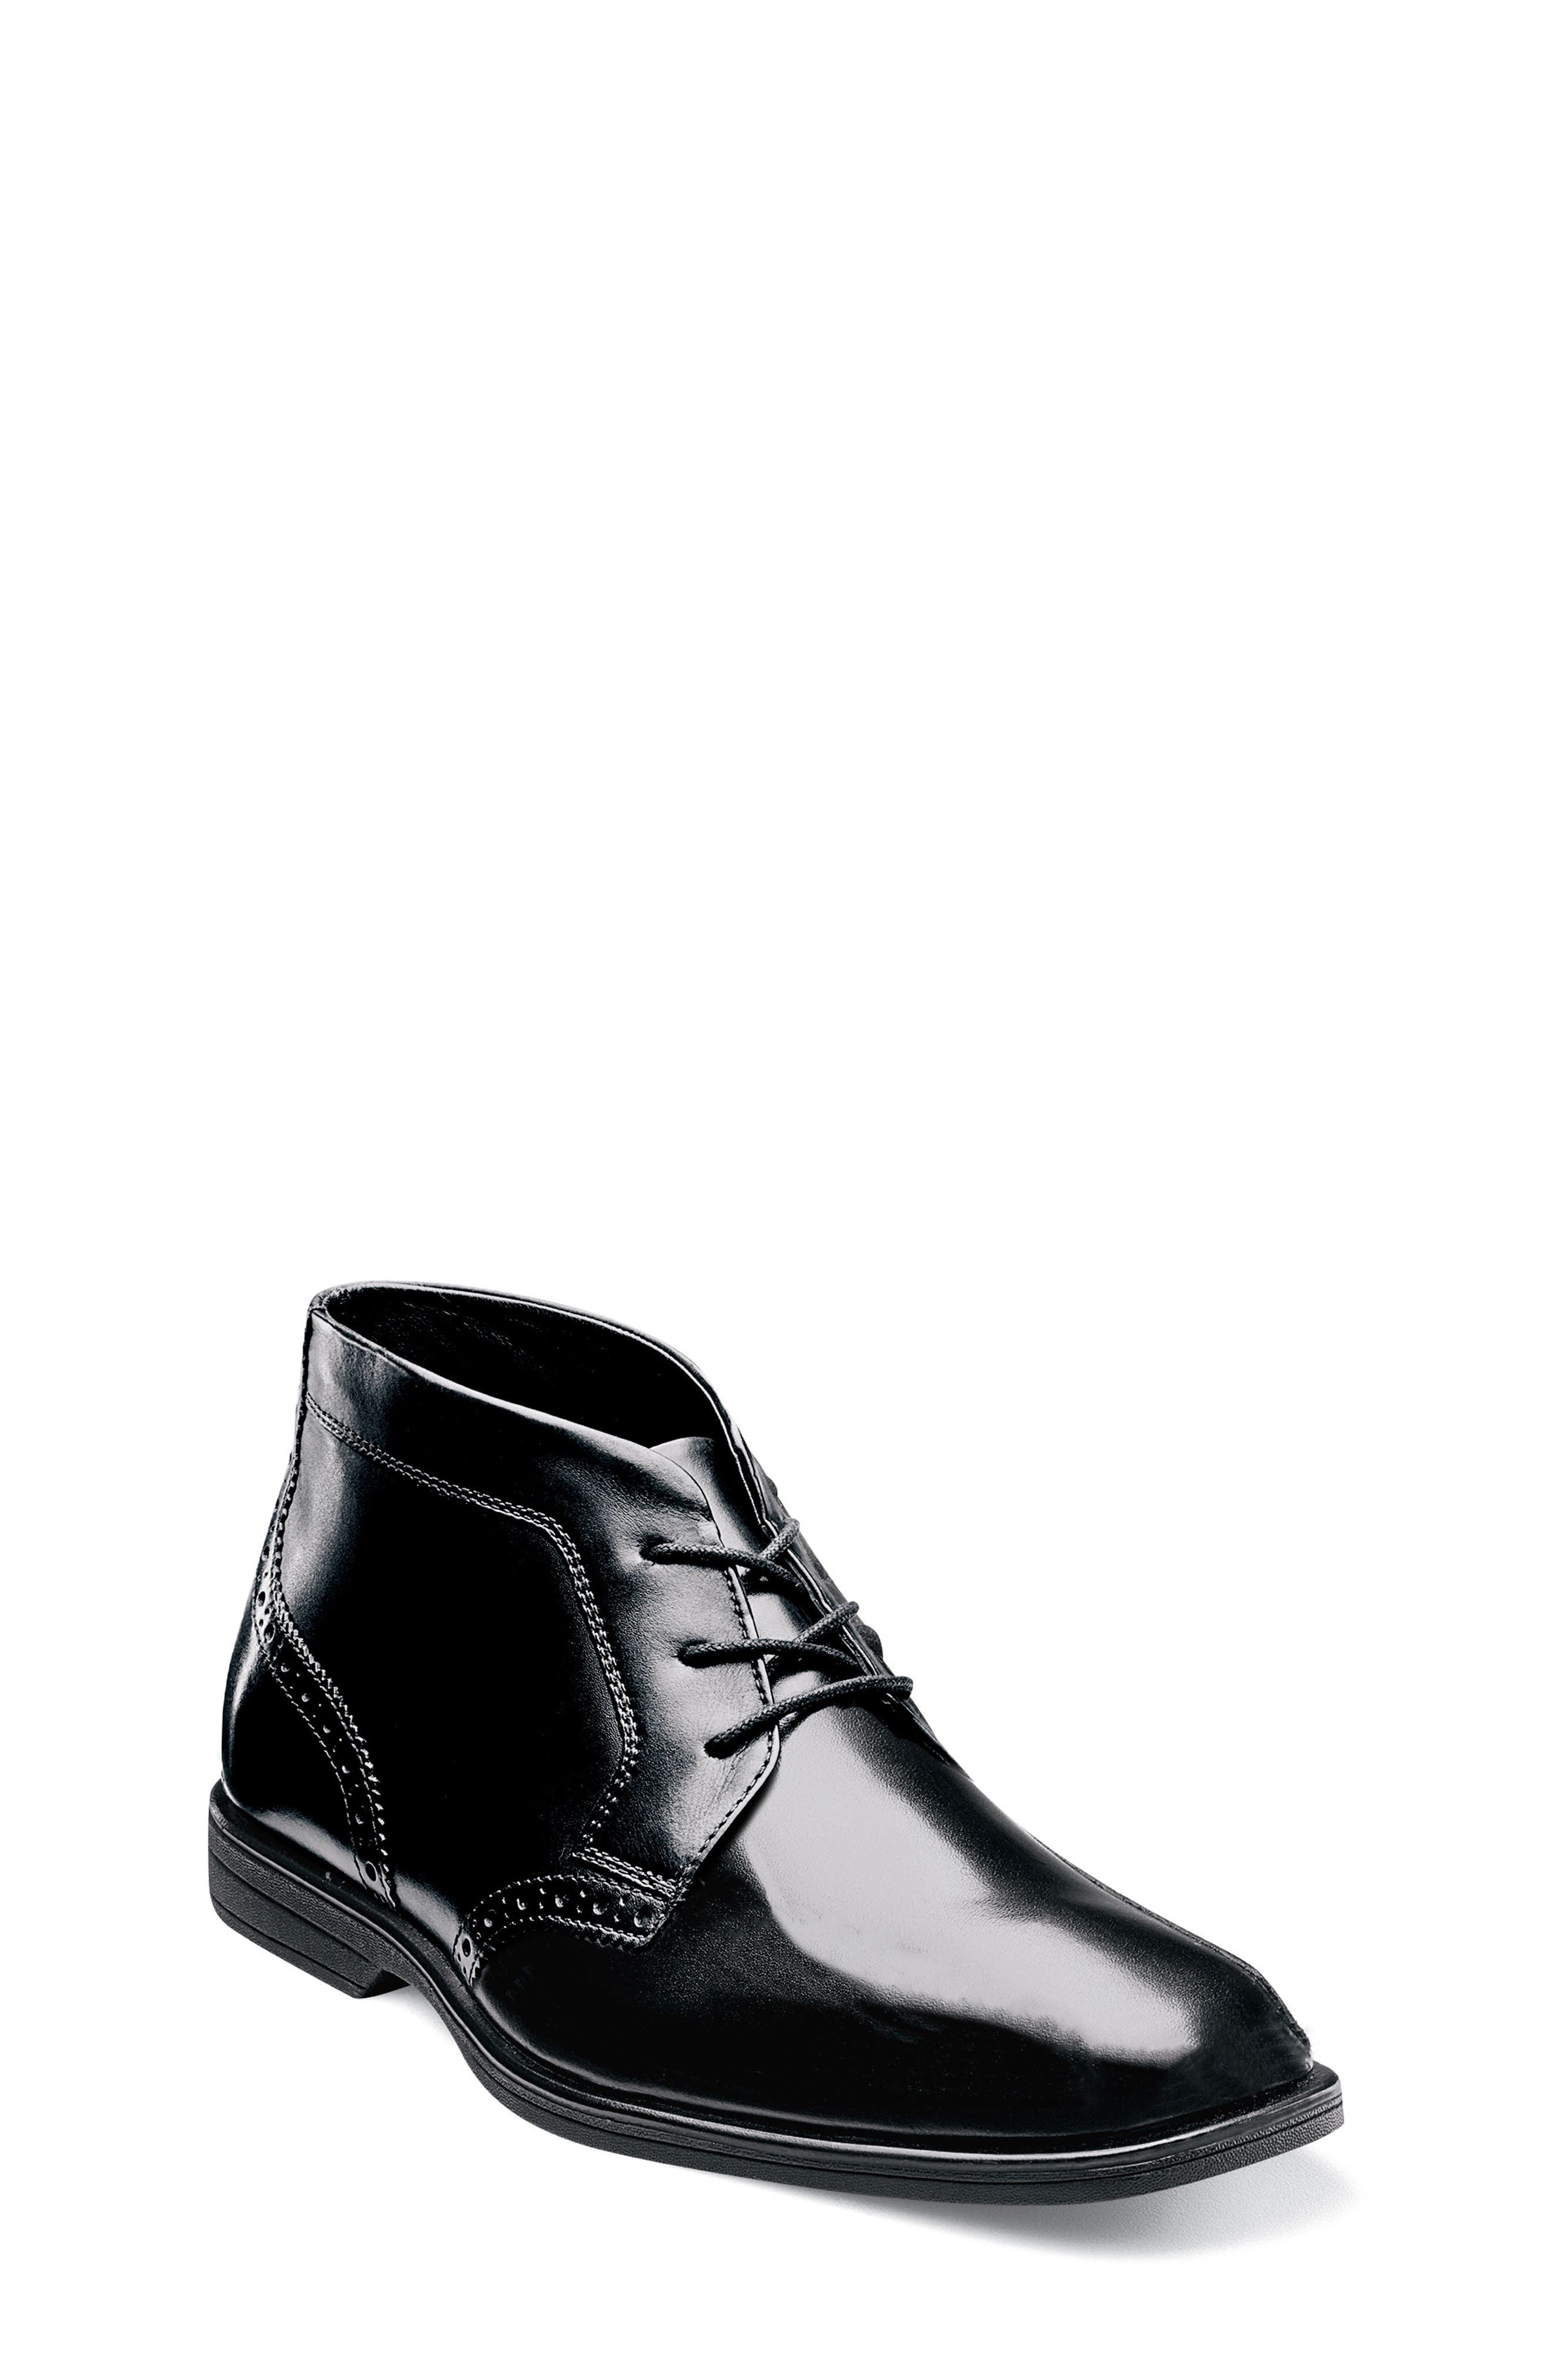 FLORSHEIM 'Reveal' Chukka Boot, Main, color, BLACK LEATHER